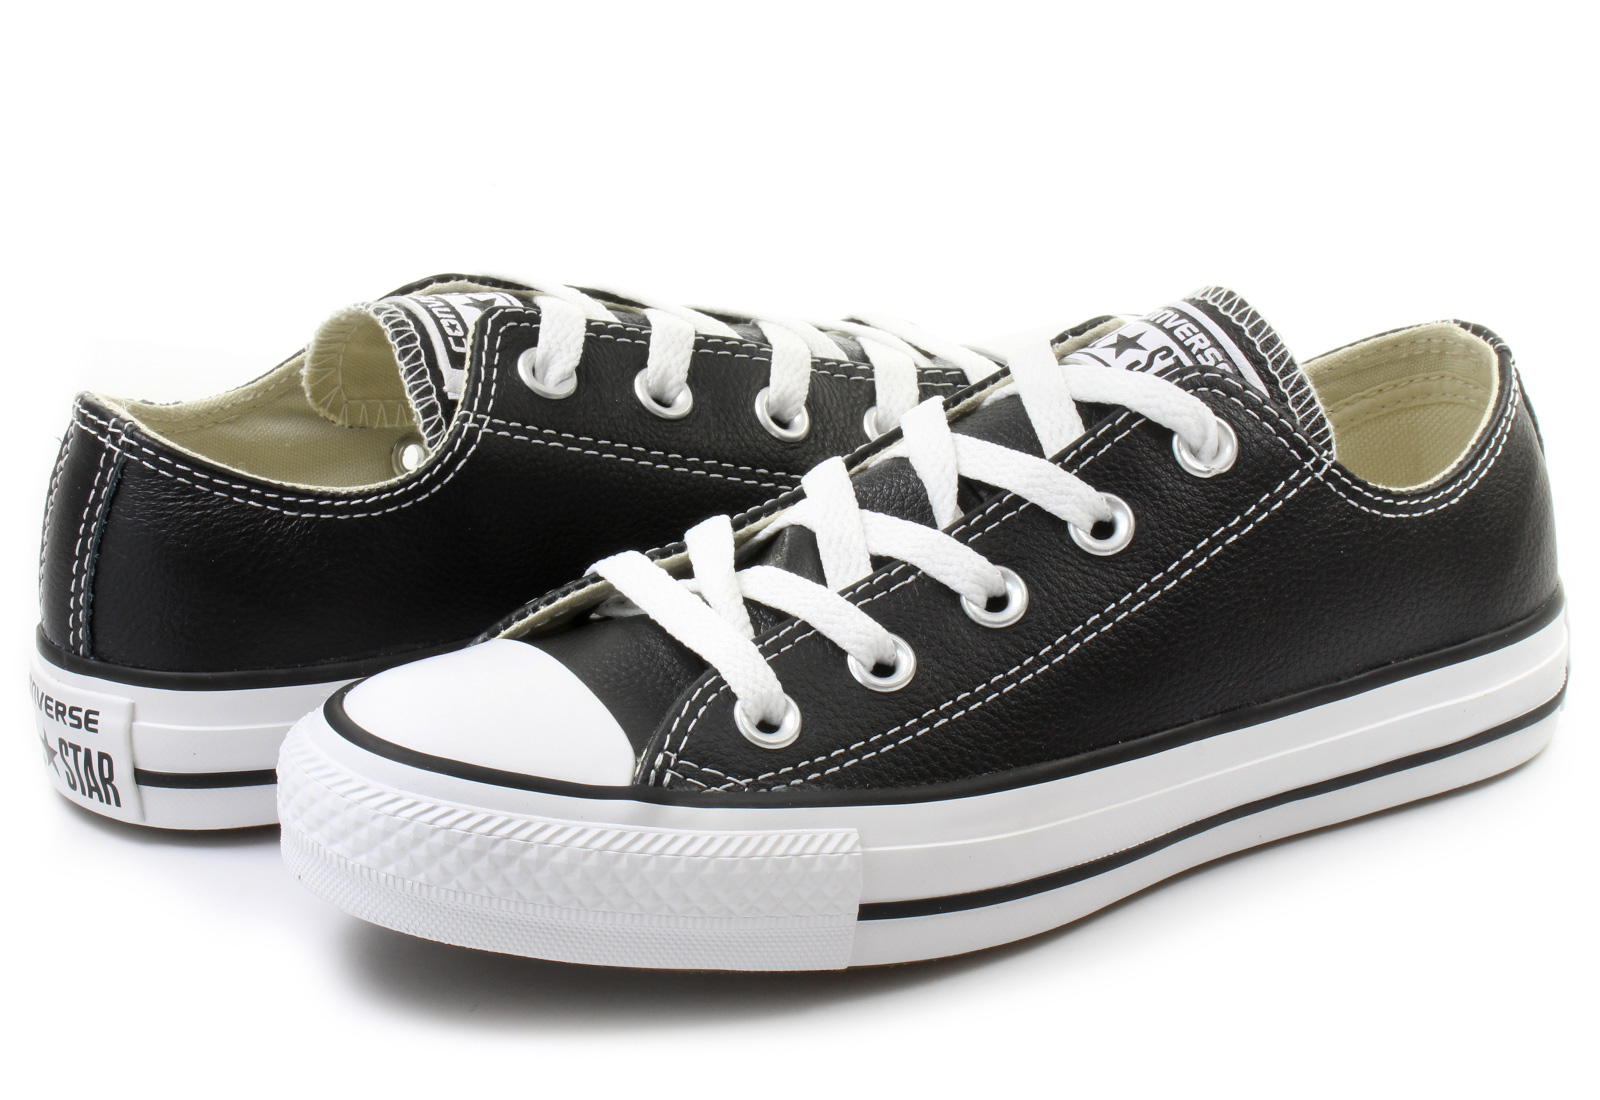 Converse Tornacipő - Ct As Core Leather Ox - 132174C - Office Shoes ... 71ddfa635e